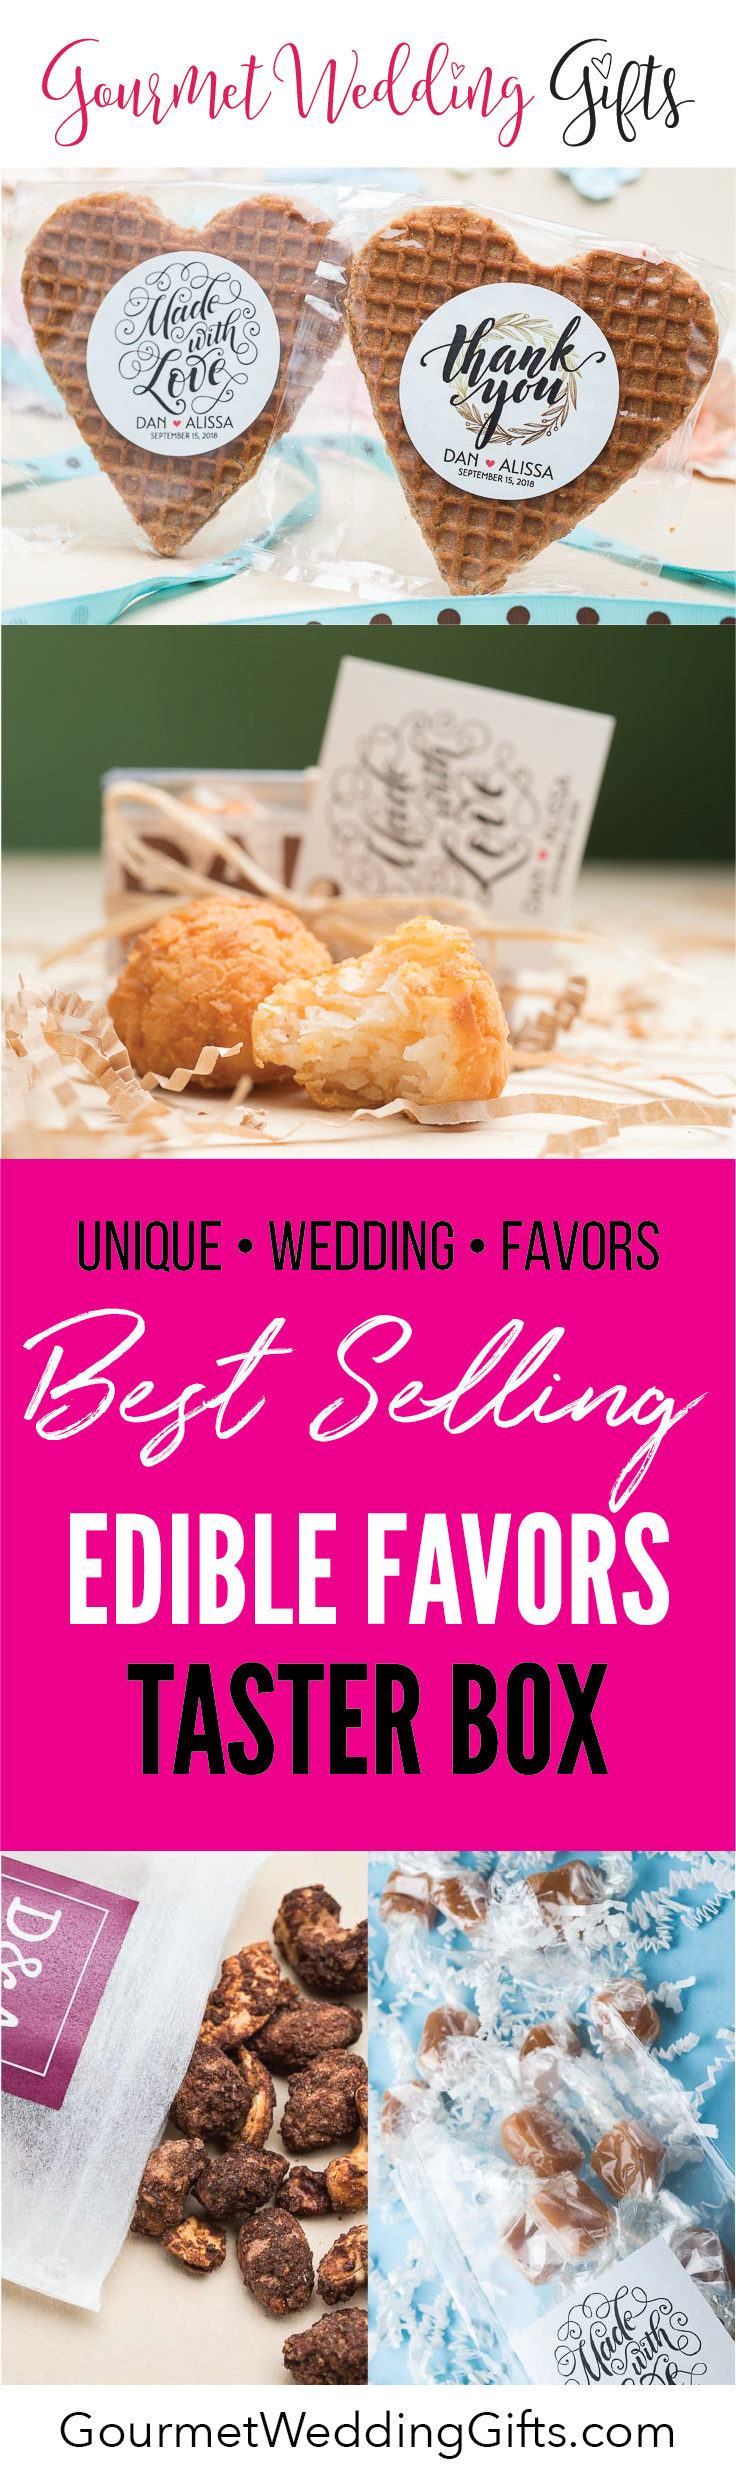 Edible Wedding Favors Unique Cheap Inexpensive For Guests ...